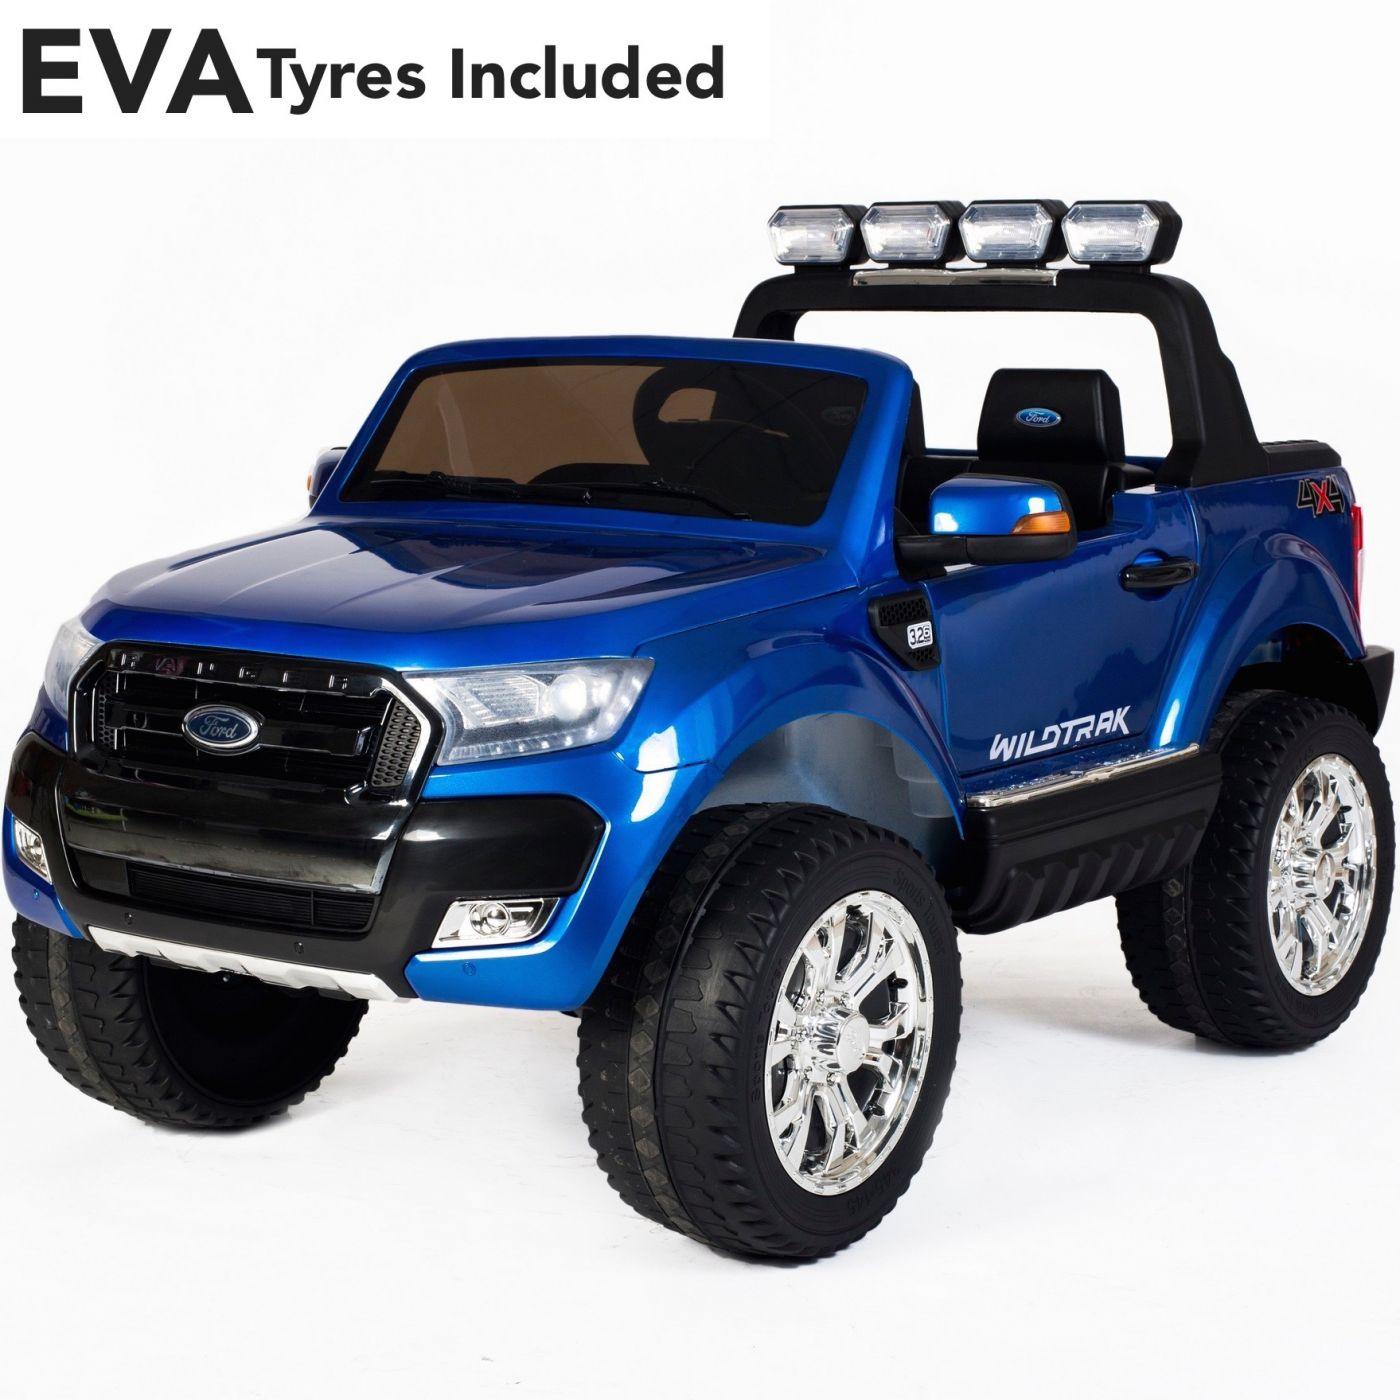 152f5324f5 Ford Ranger Wildtrak Licensed 4WD 24V  Battery Ride On Jeep - Blue EVA For  Just £349.95